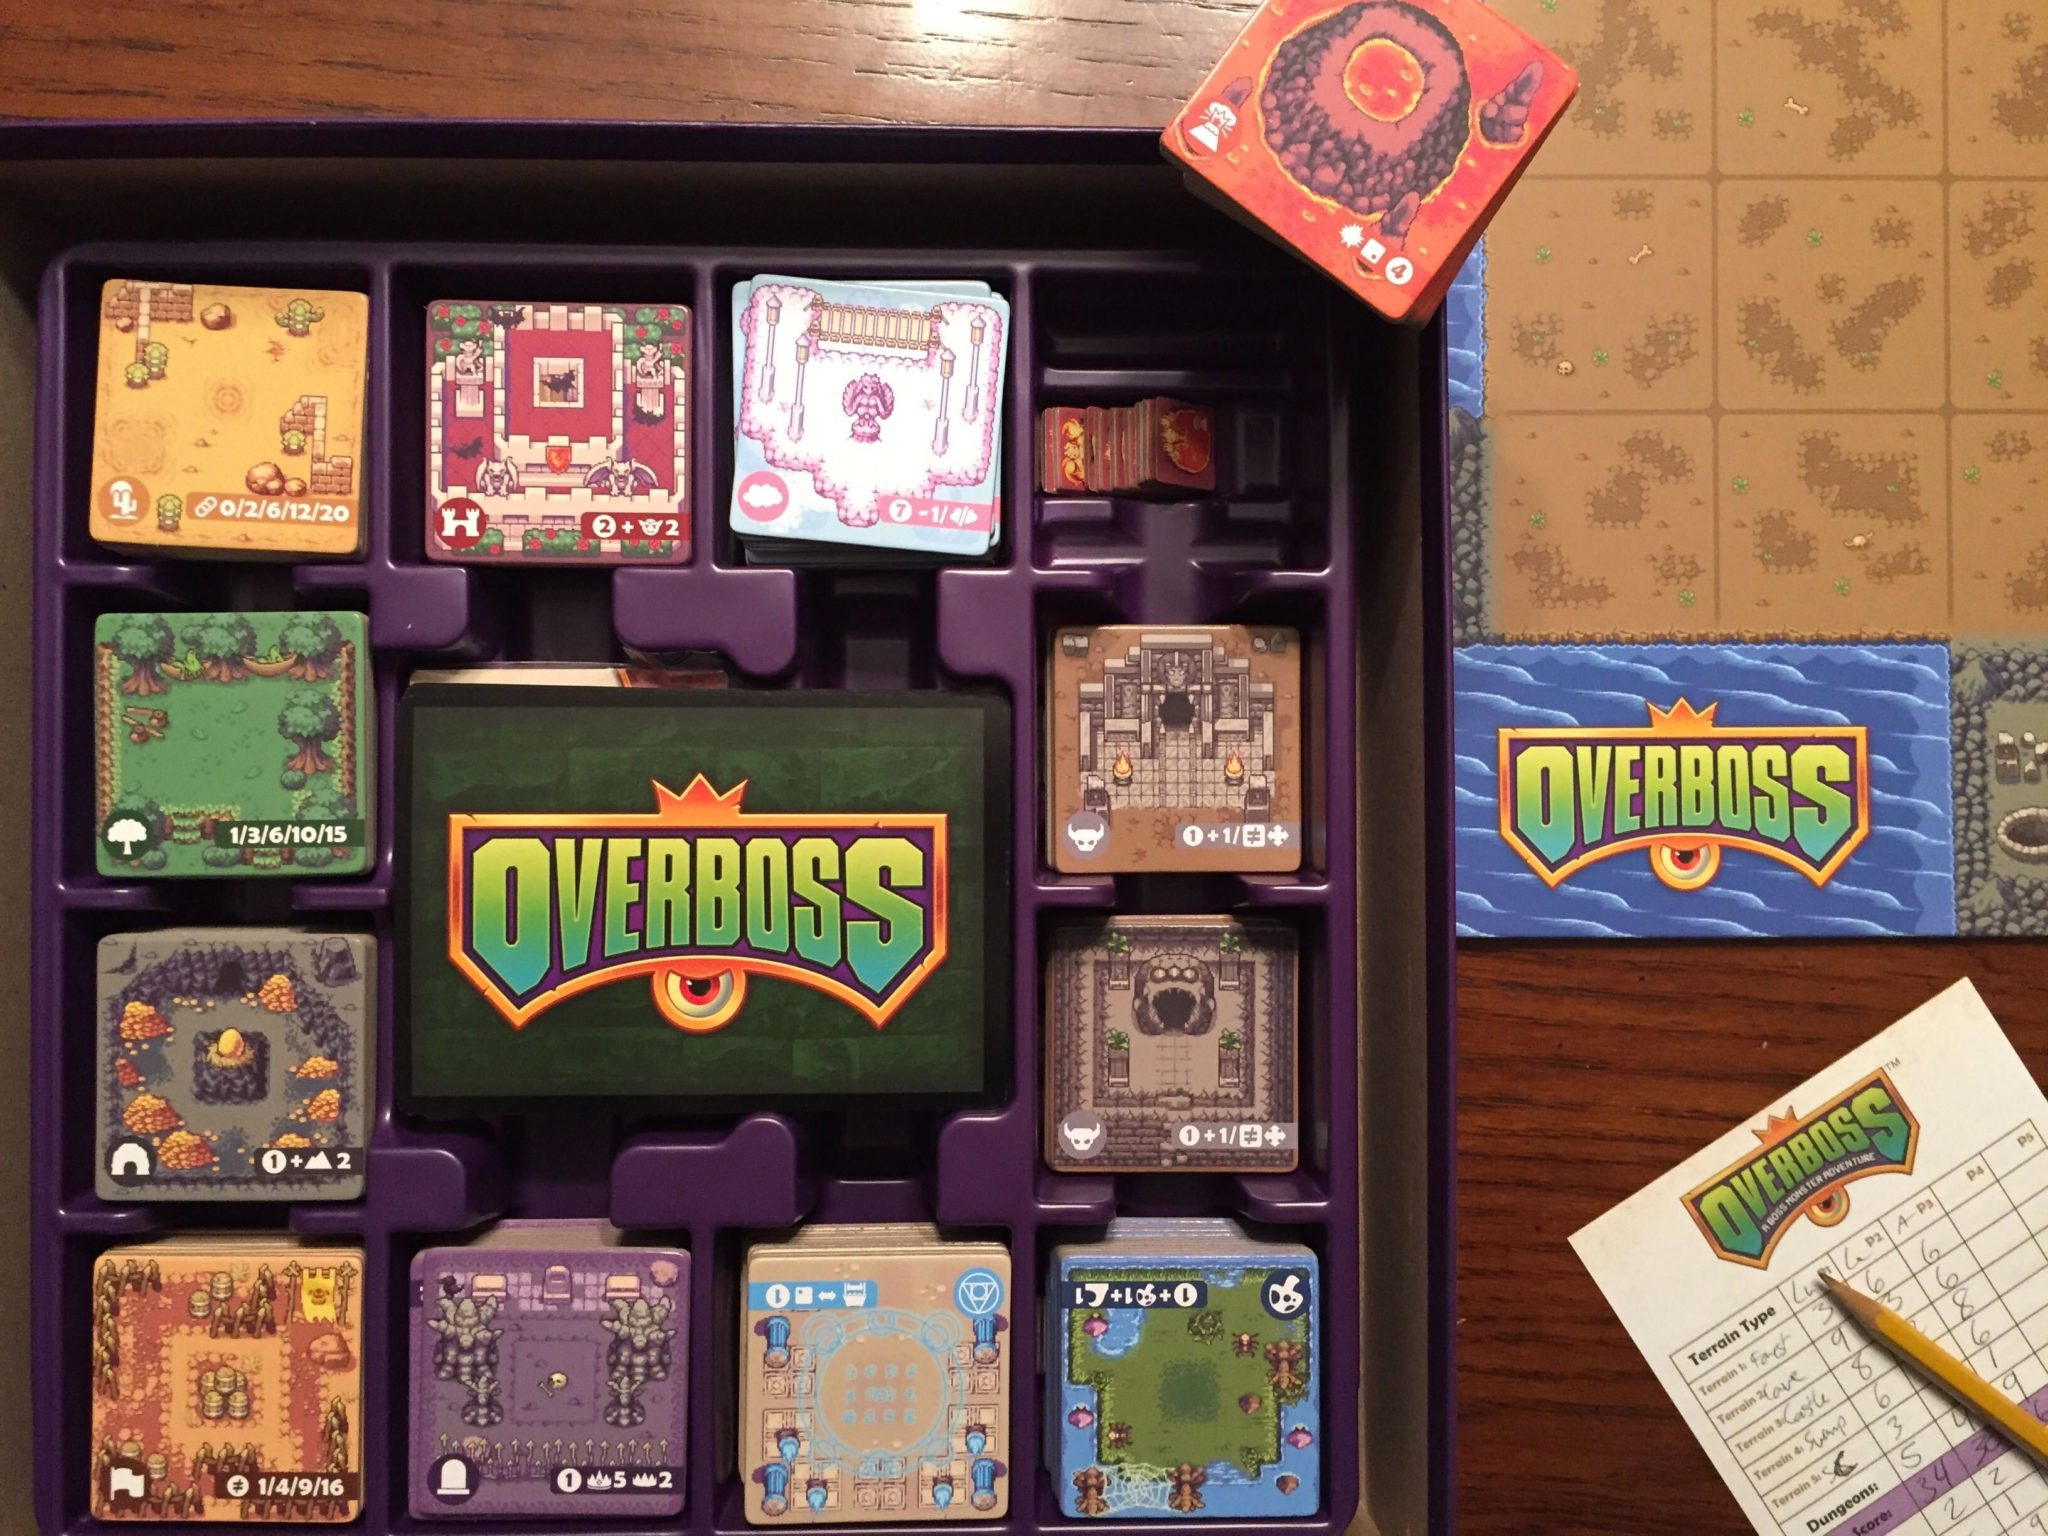 The game insert for Overboss is shown, with all the tiles put away nicely except for the volcano tiles, which are on the edge of the box to show that the volcano monster tiles are stored underneath them.